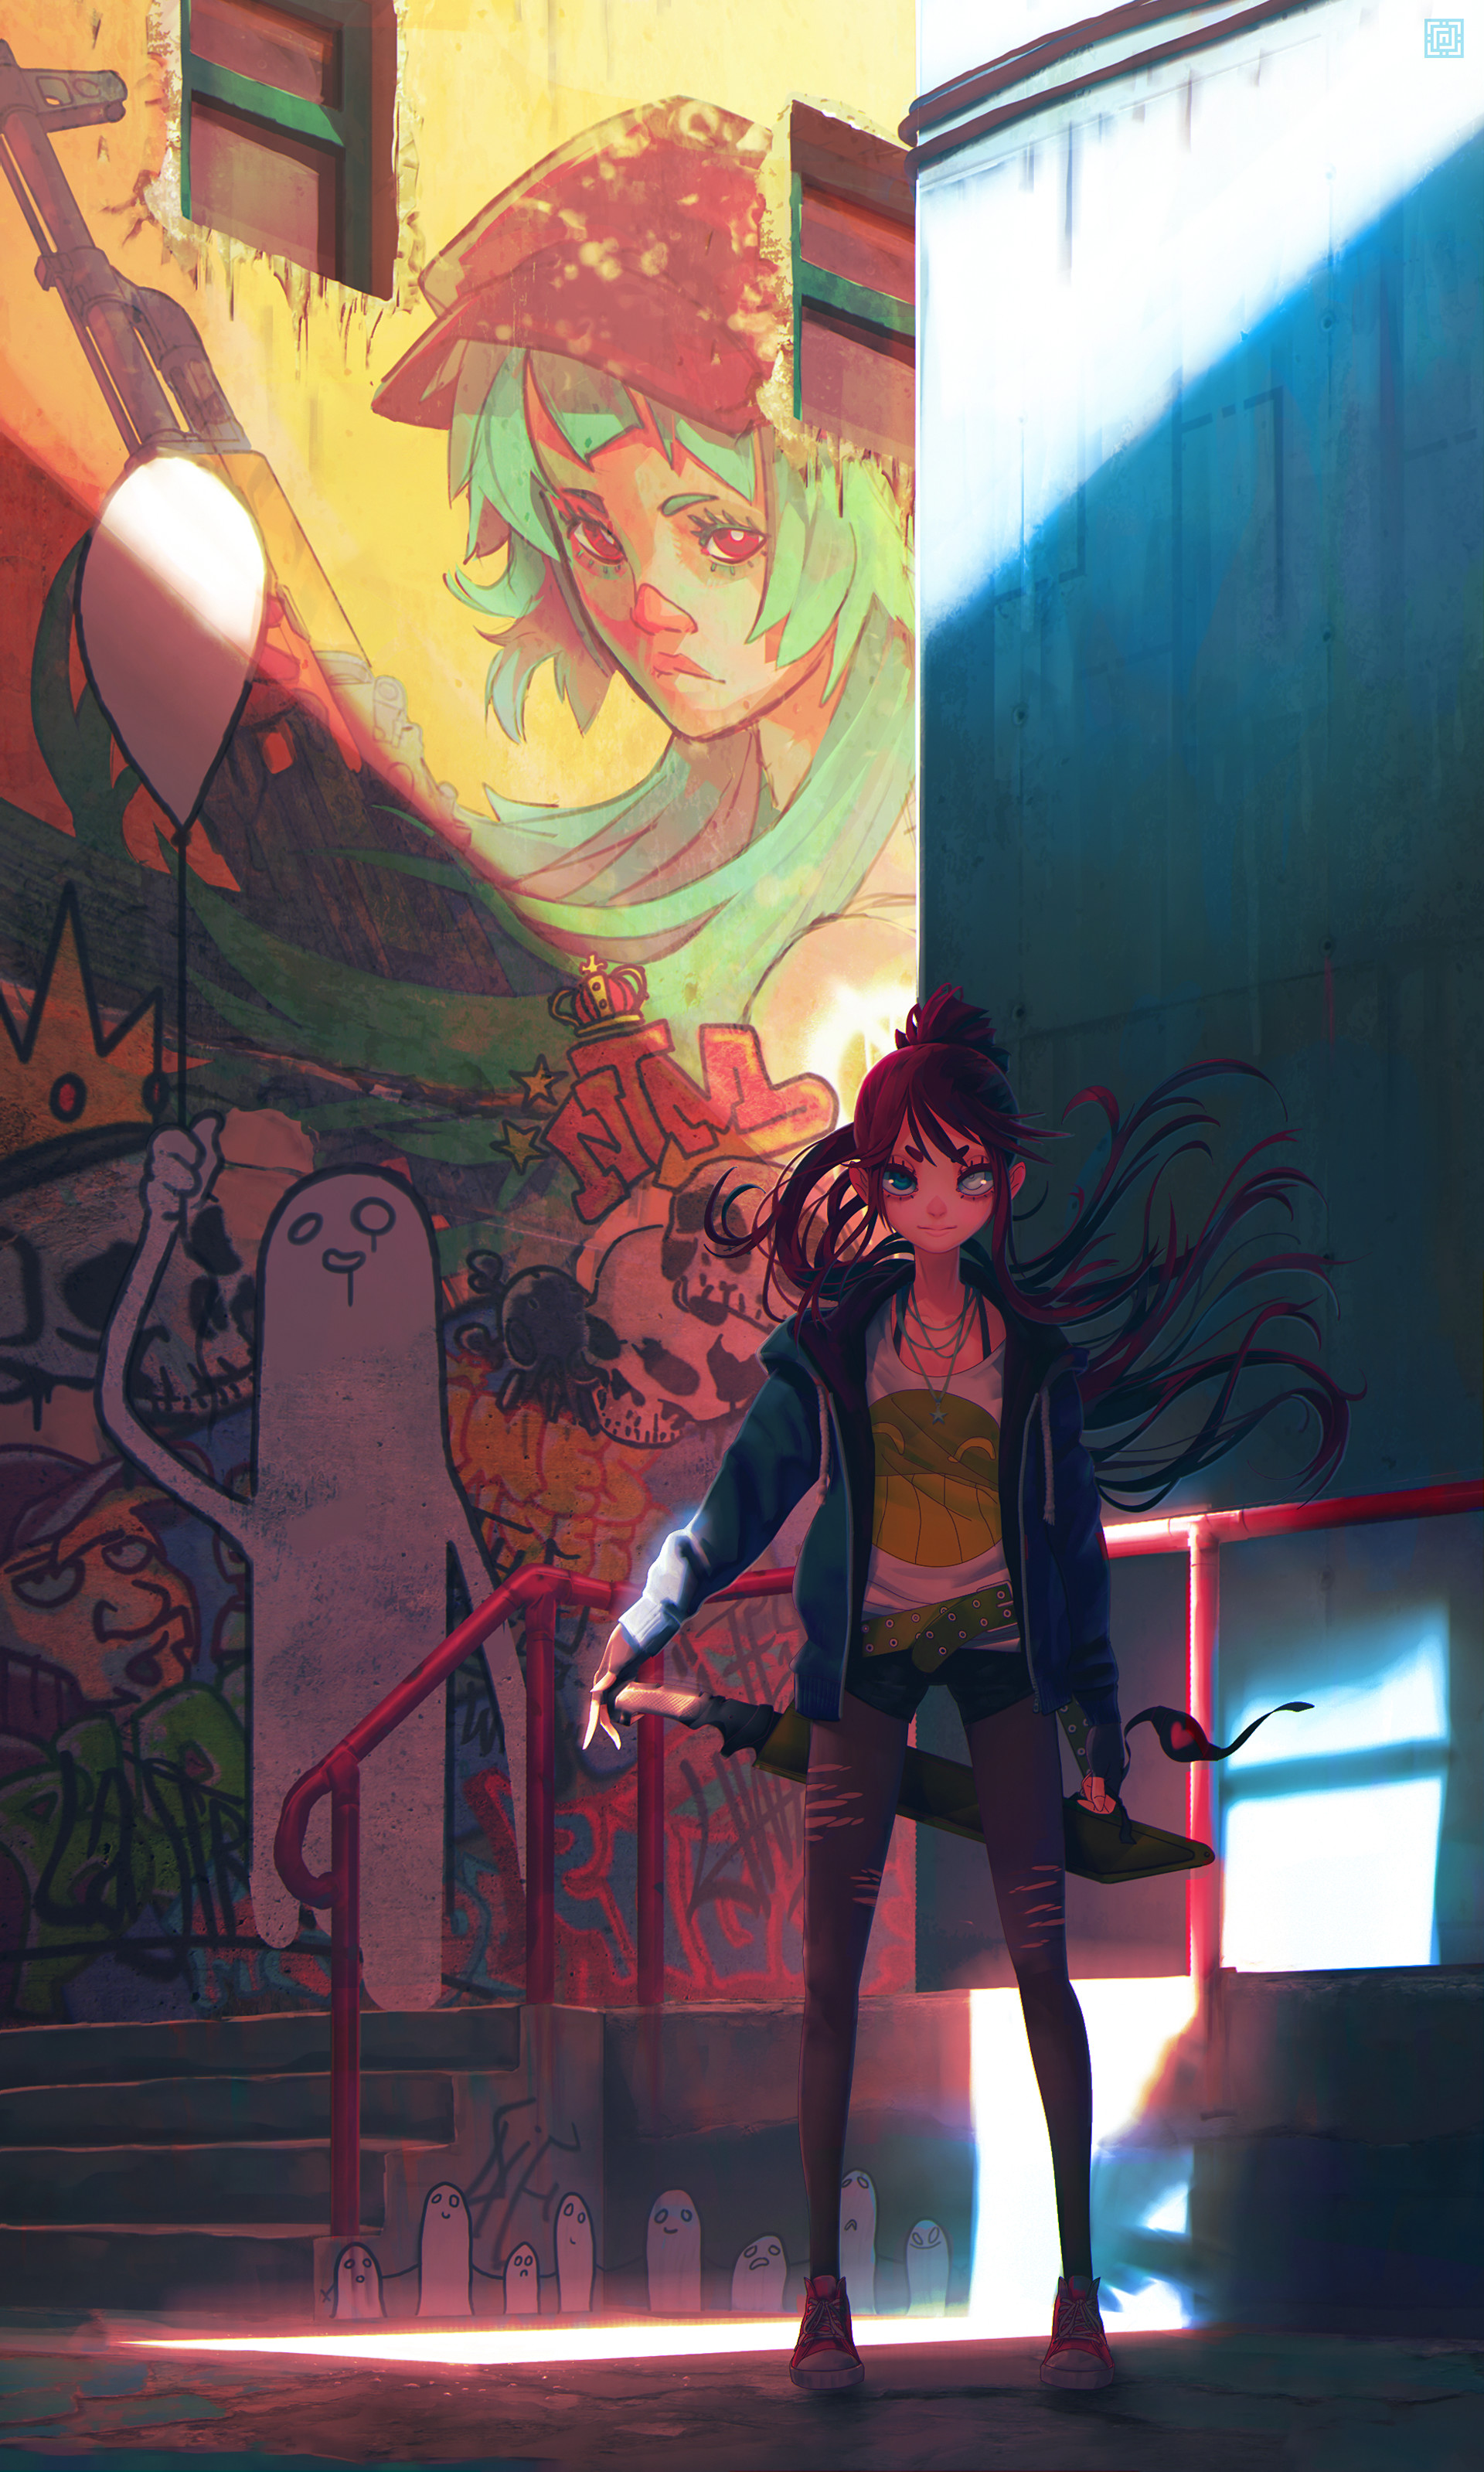 Deadslug_digital_painting_illustration_girl_street_city_color